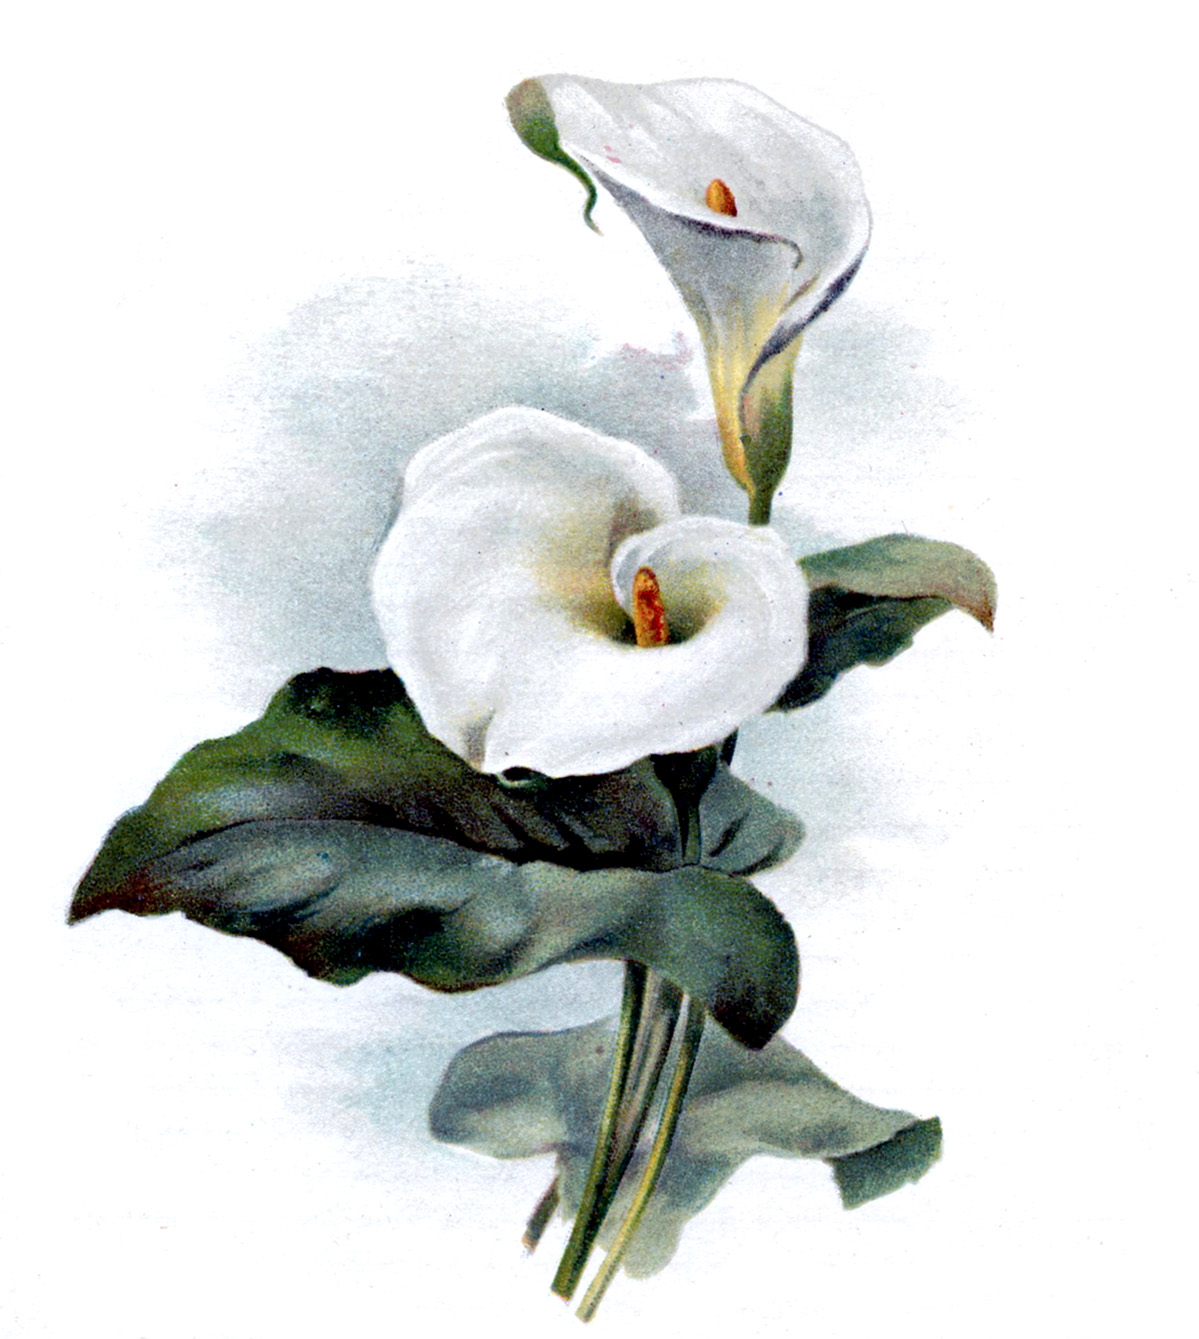 Lilies graphics graphic freeuse download Lilies graphics - ClipartFest graphic freeuse download